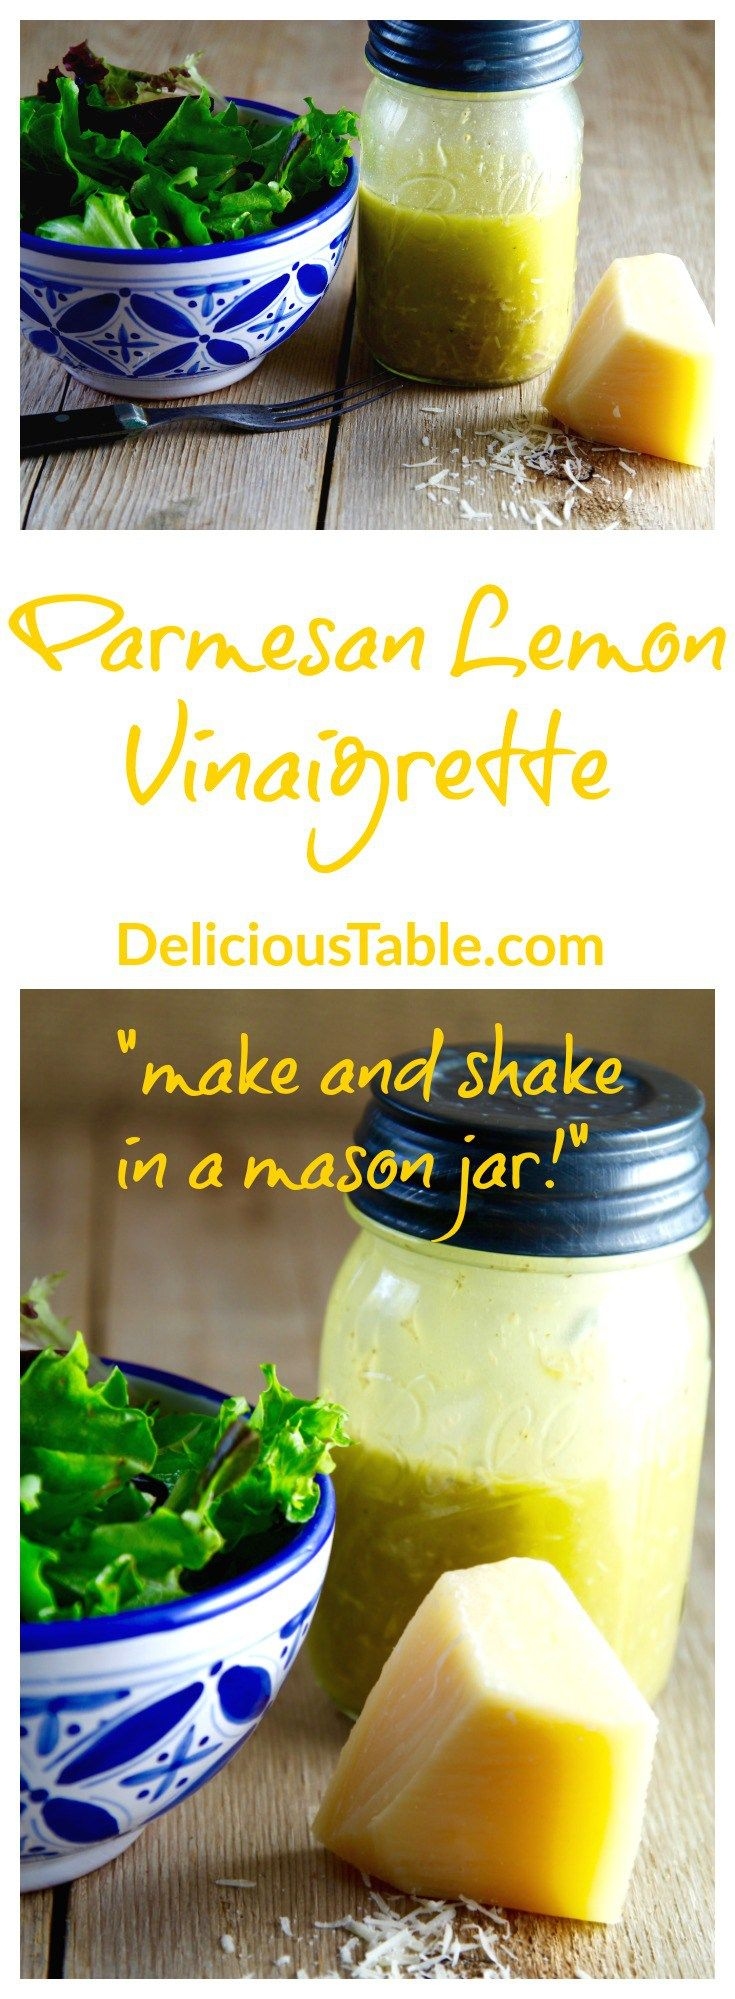 """Make & Shake"" (in a mason jar), fresh Parmesan Lemon Vinaigrette is a tasty homemade salad dressing recipe made in minutes with fresh ingredients!"